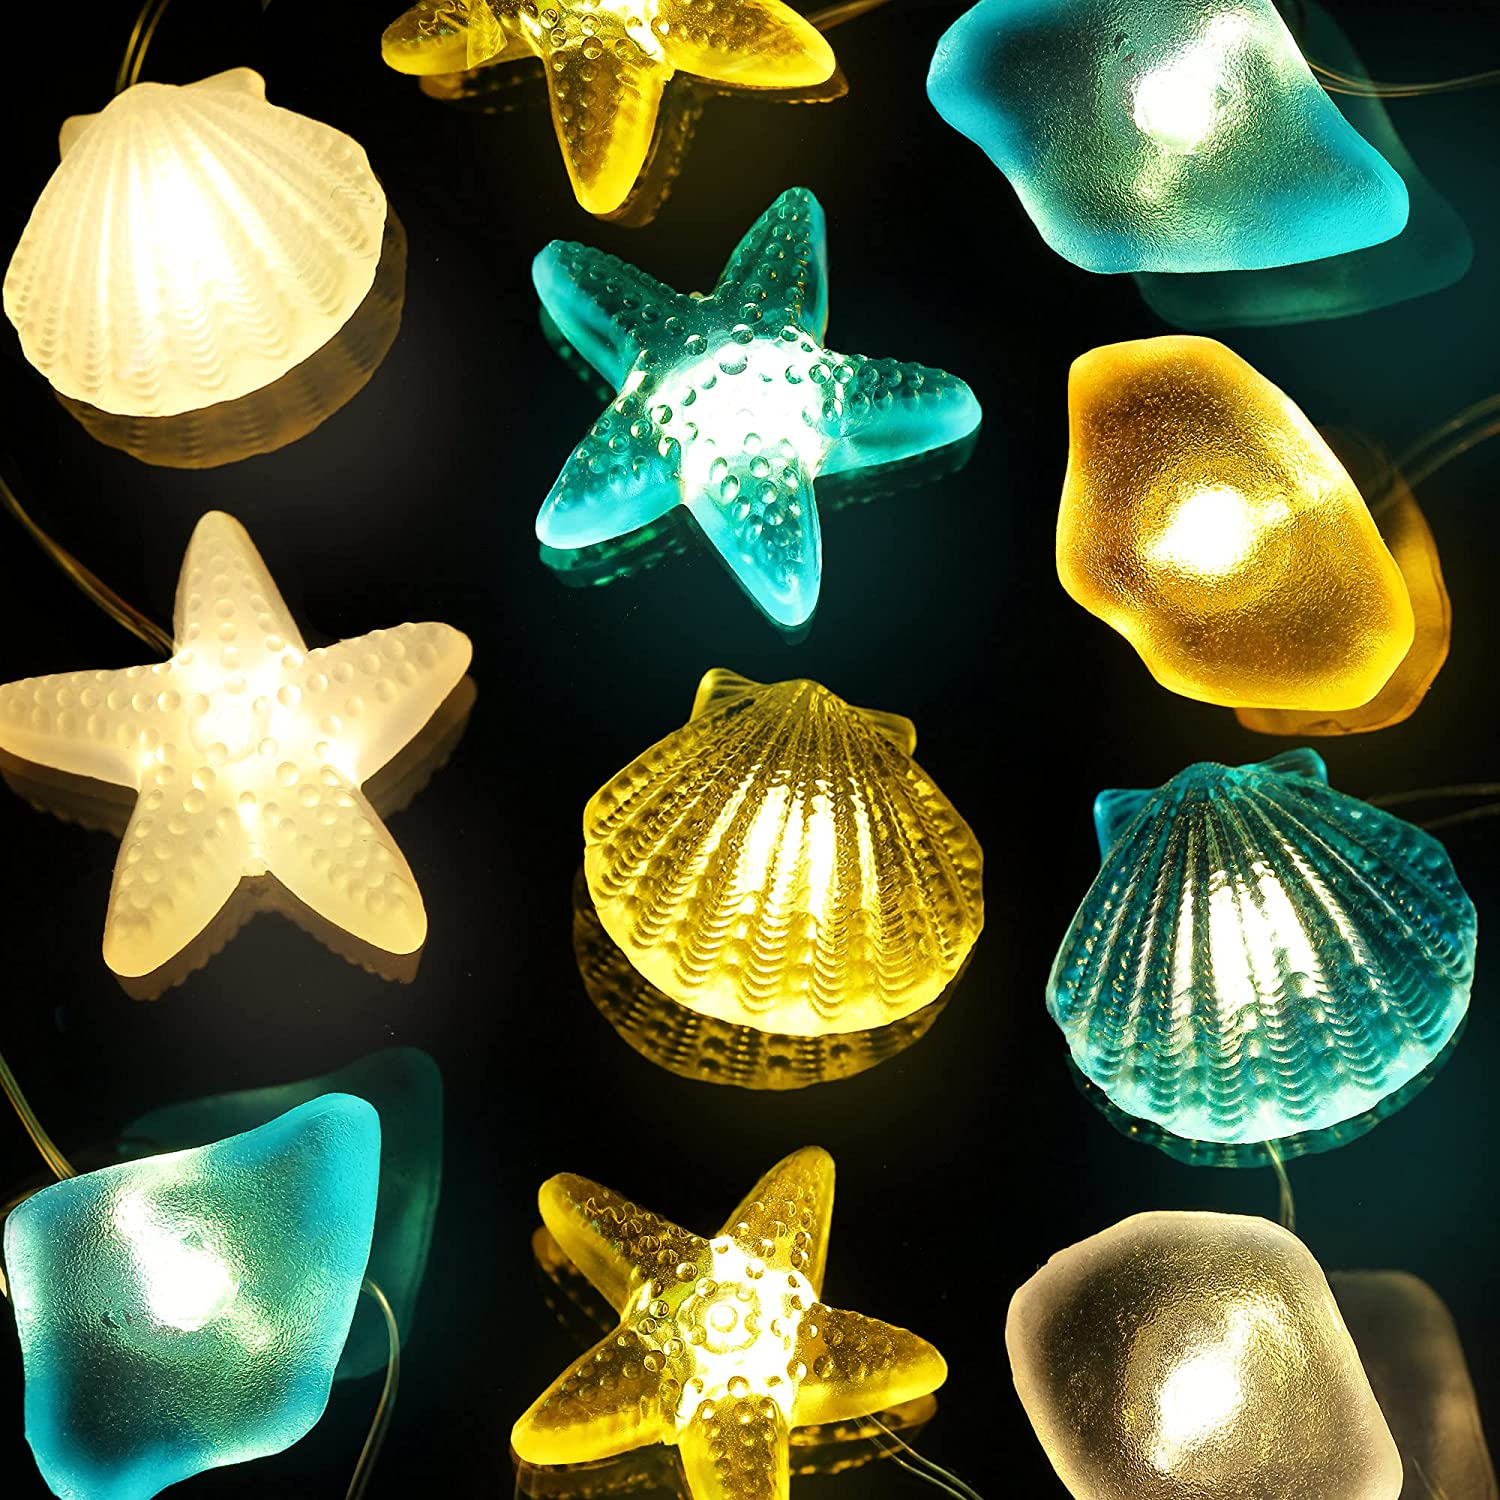 Sea Beach Seashell String Lights, 10 Ft 30 LEDs Nautical Ocean Theme Fairy Light Decor, Shell Starfish Sea Glass USB with Remote Timer for Fish Net Mermaid Birthday Party Baby Shower Decorations